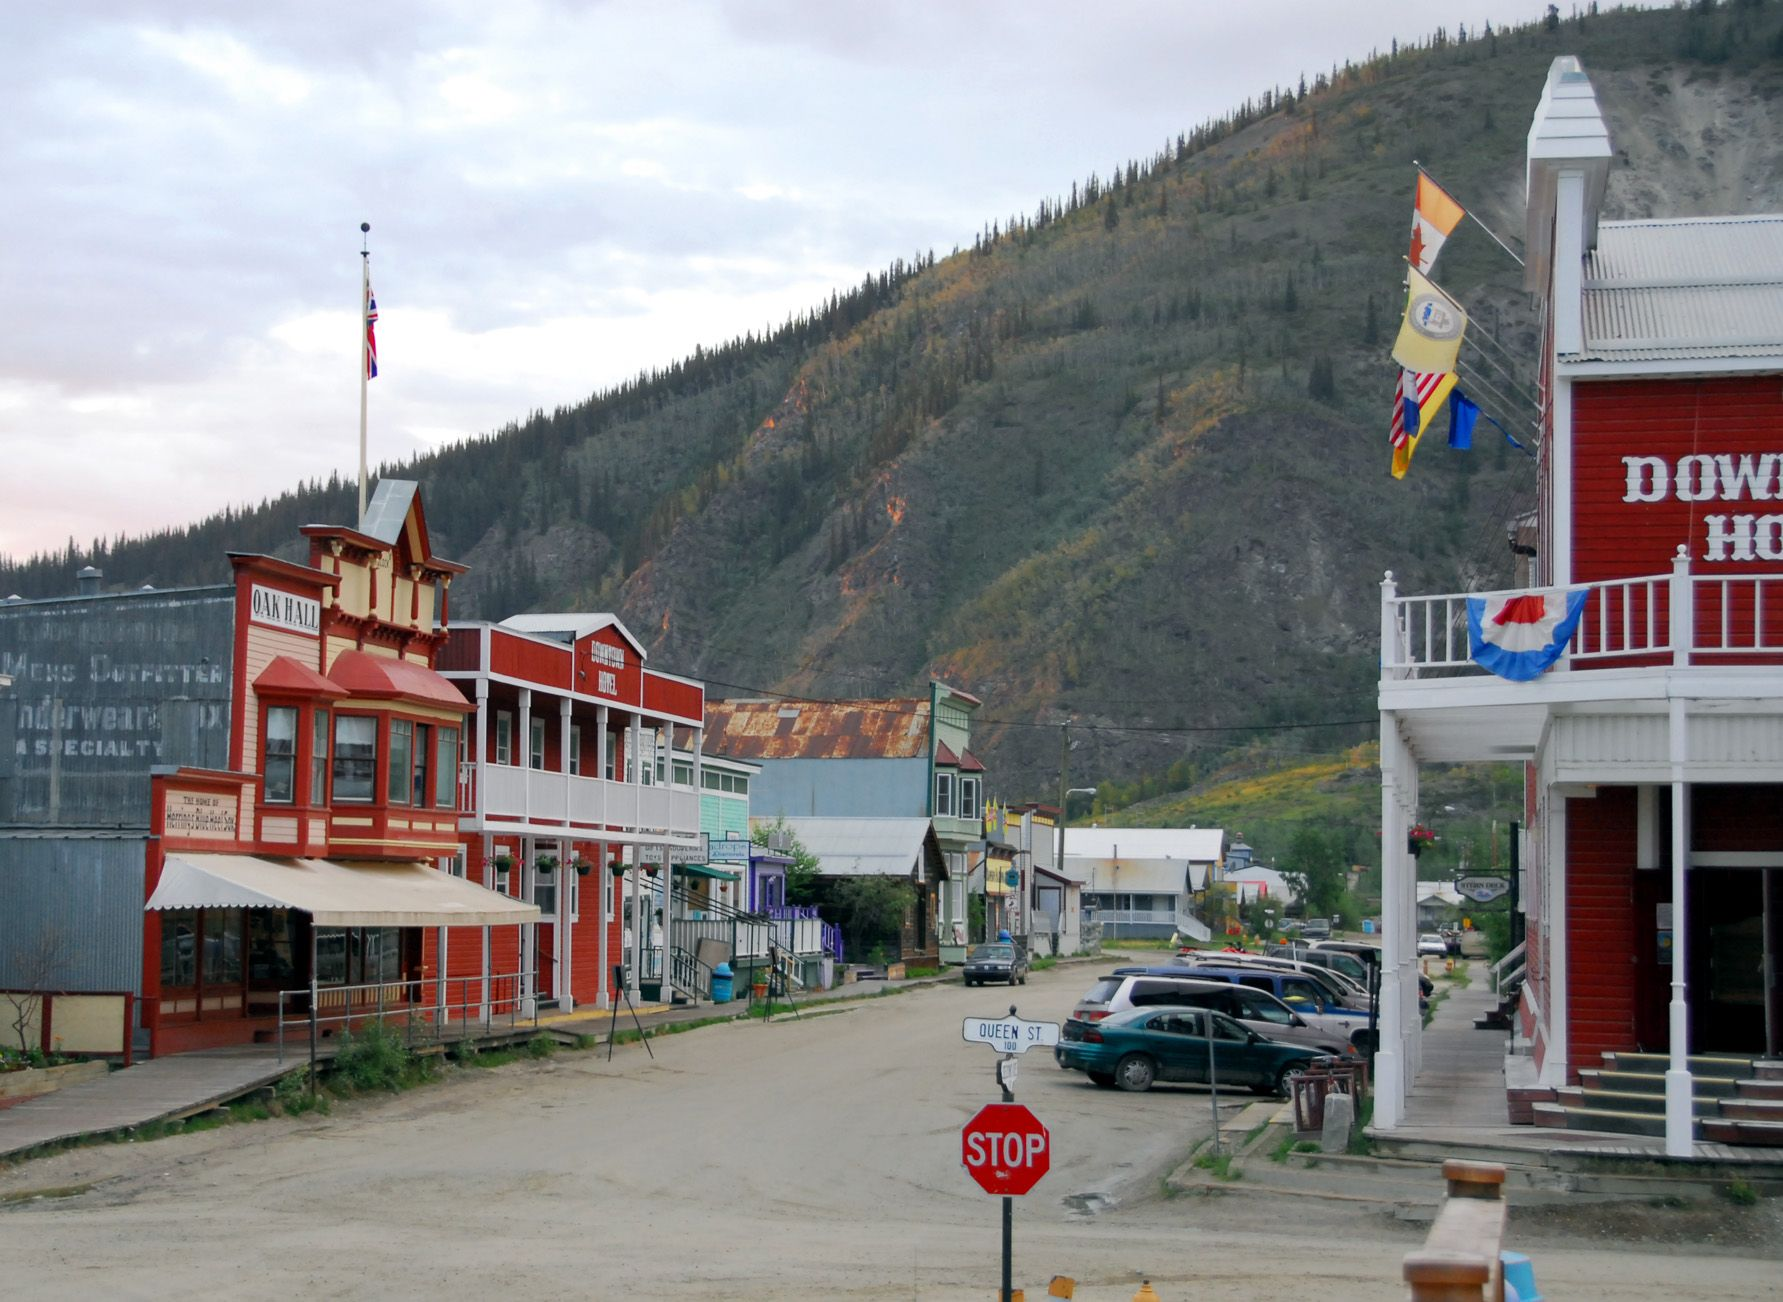 Downtown Dawson City In The Yukon Canada I Have Family Roots There And Dream Of Visiting One Day Travel Yukon Cana Dawson City Yukon Yukon Canada Yukon